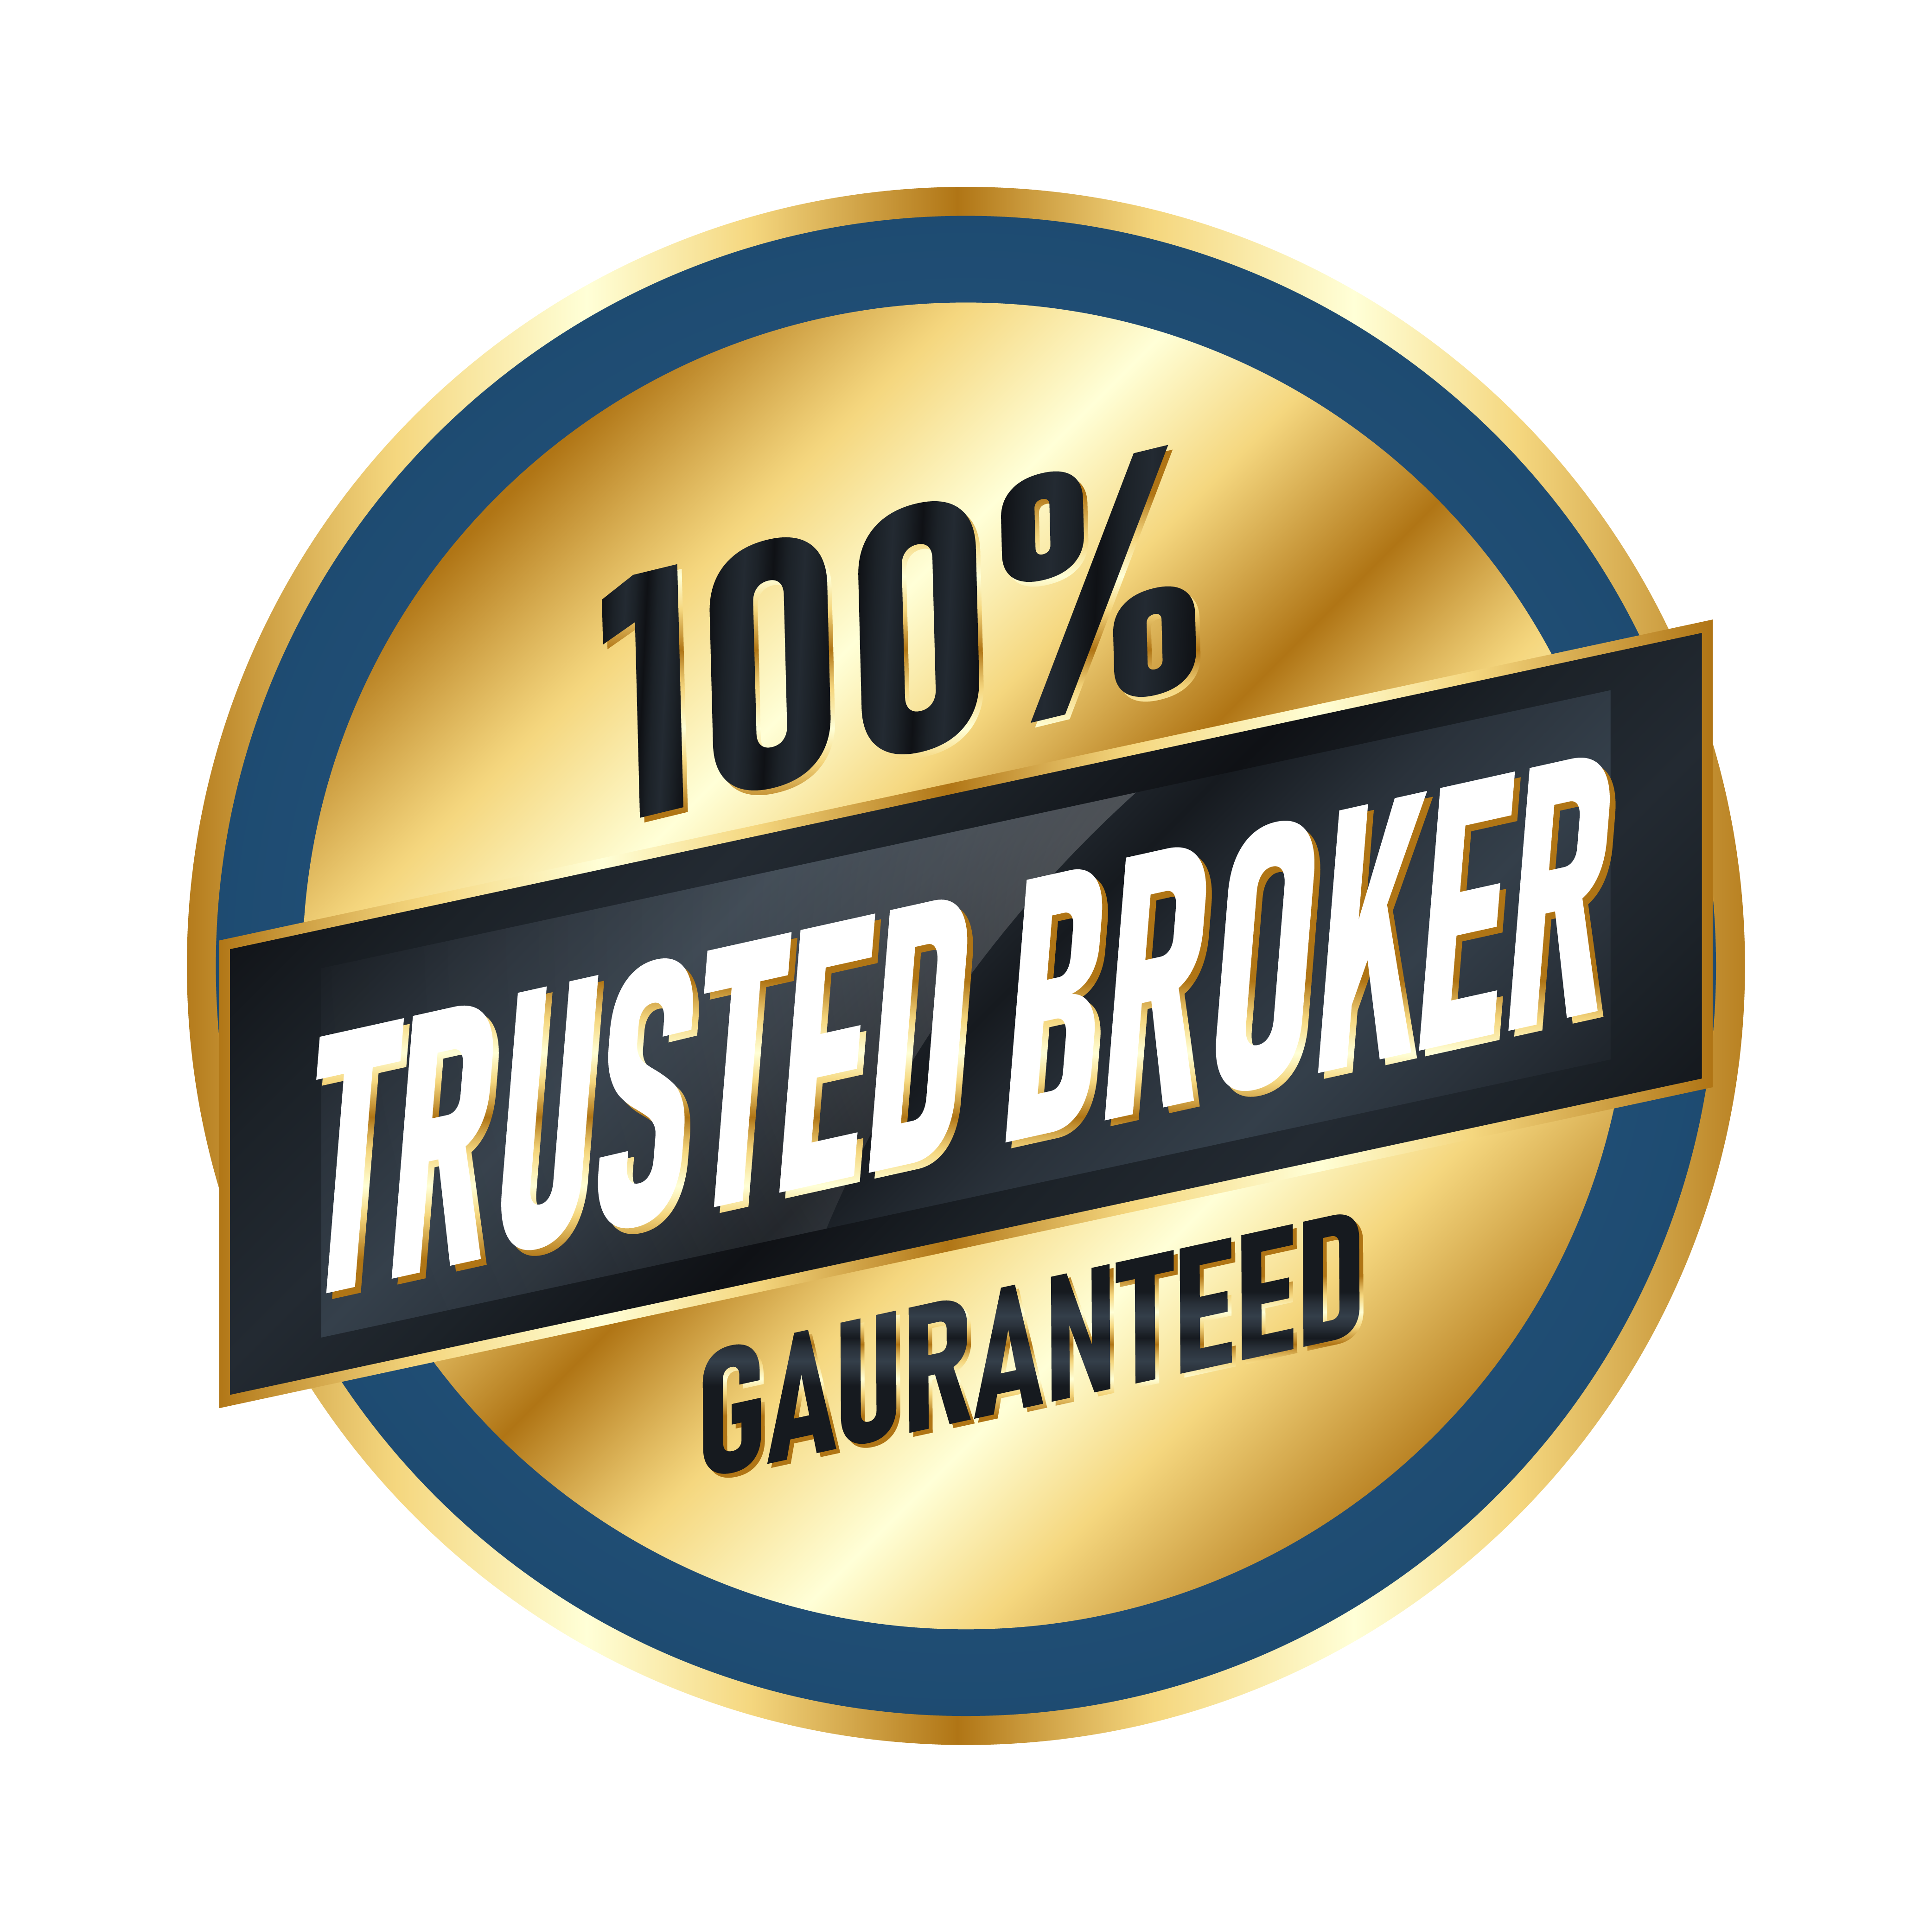 FXCM is a trusted Forex Broker